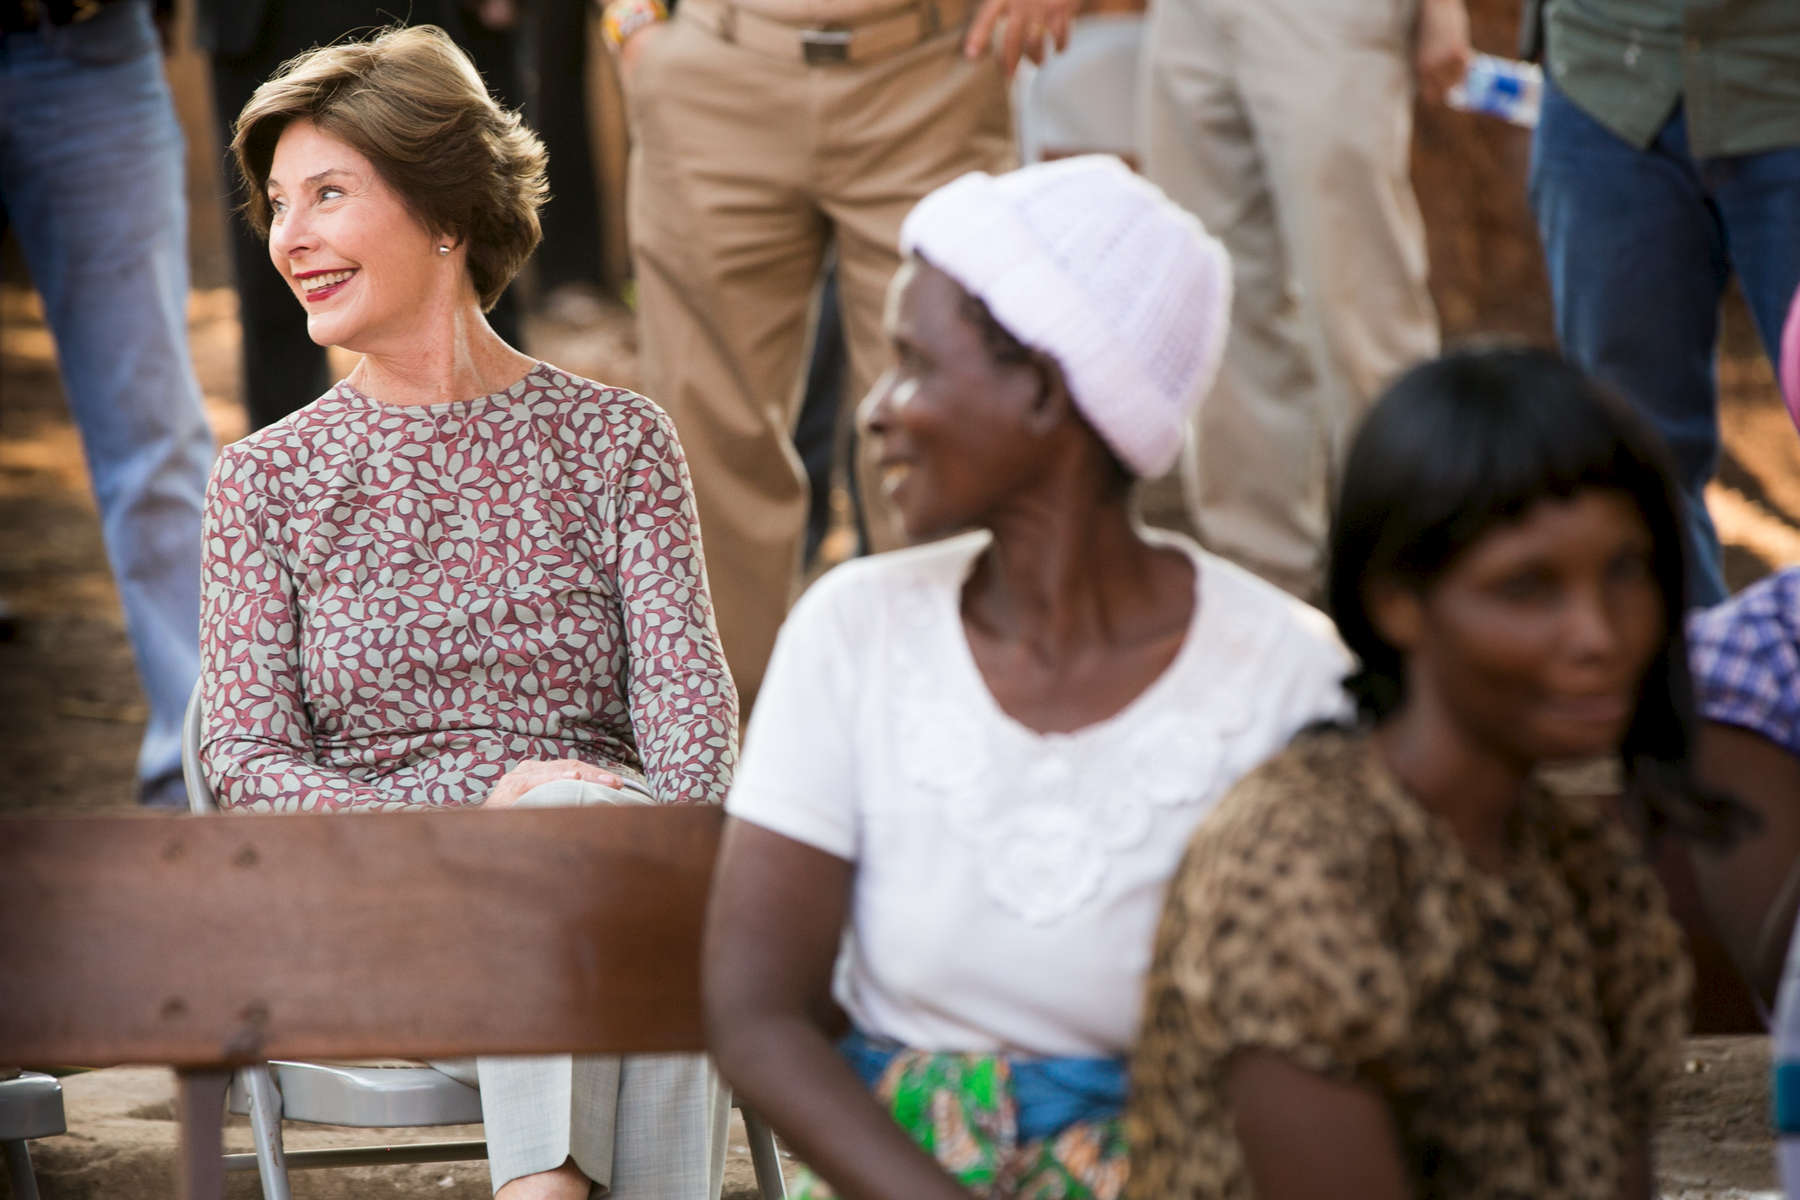 President George W. Bush and Mrs. Laura Bush open the MOSI OA TUNY CLINIC RENOVATION PROJECT with Zambian Dr. Christine Kaseba in Livingston, Zambia. The trip of President George W. Bush and Mrs. Laura Bush to Zambia and Tanzania on July 1, 2013. Photo by Paul Morse